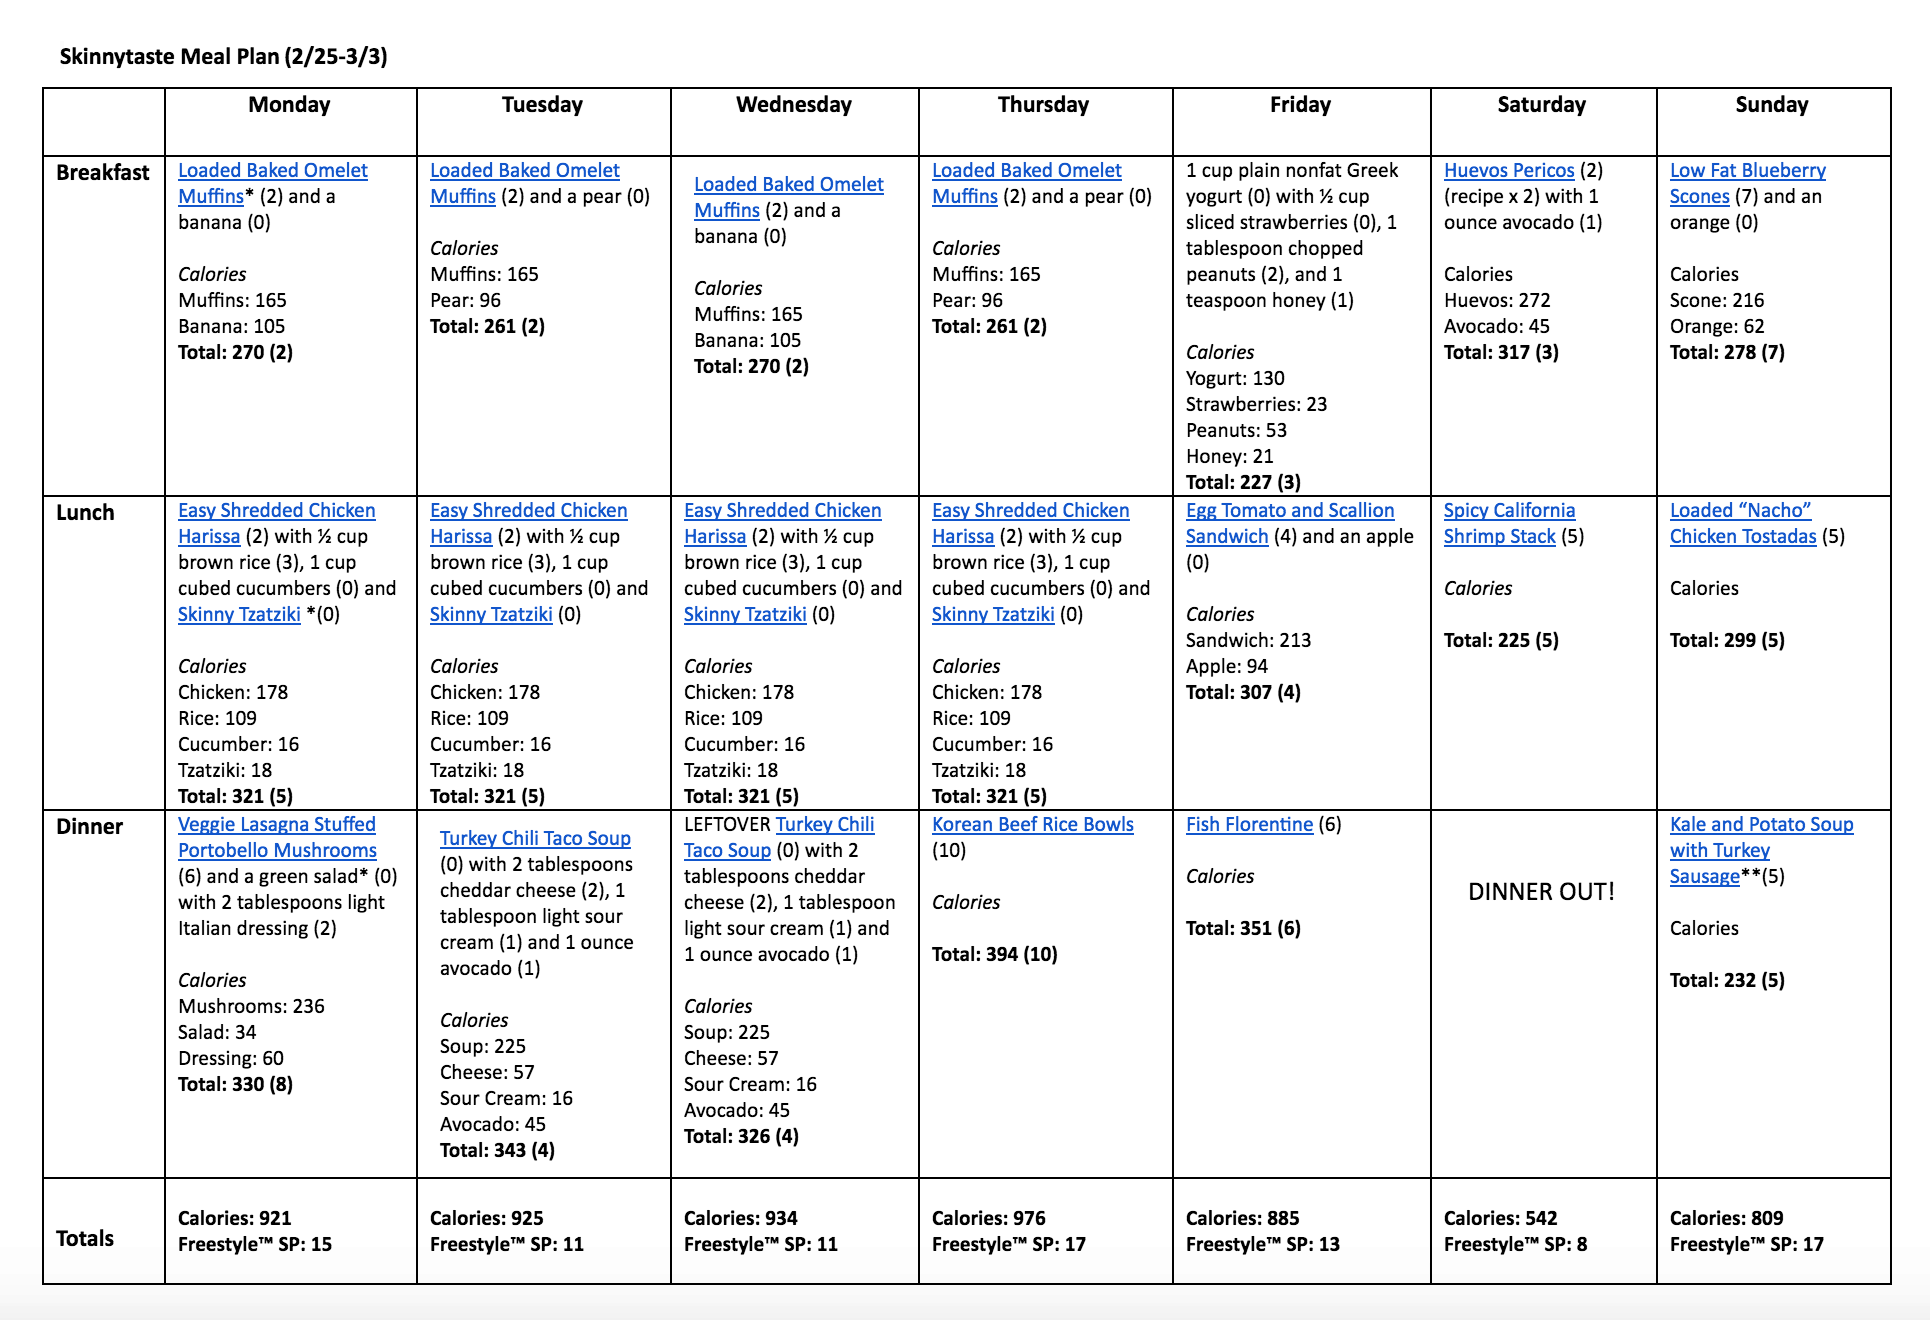 Skinnytaste Meal Plan (February 25-March 3)